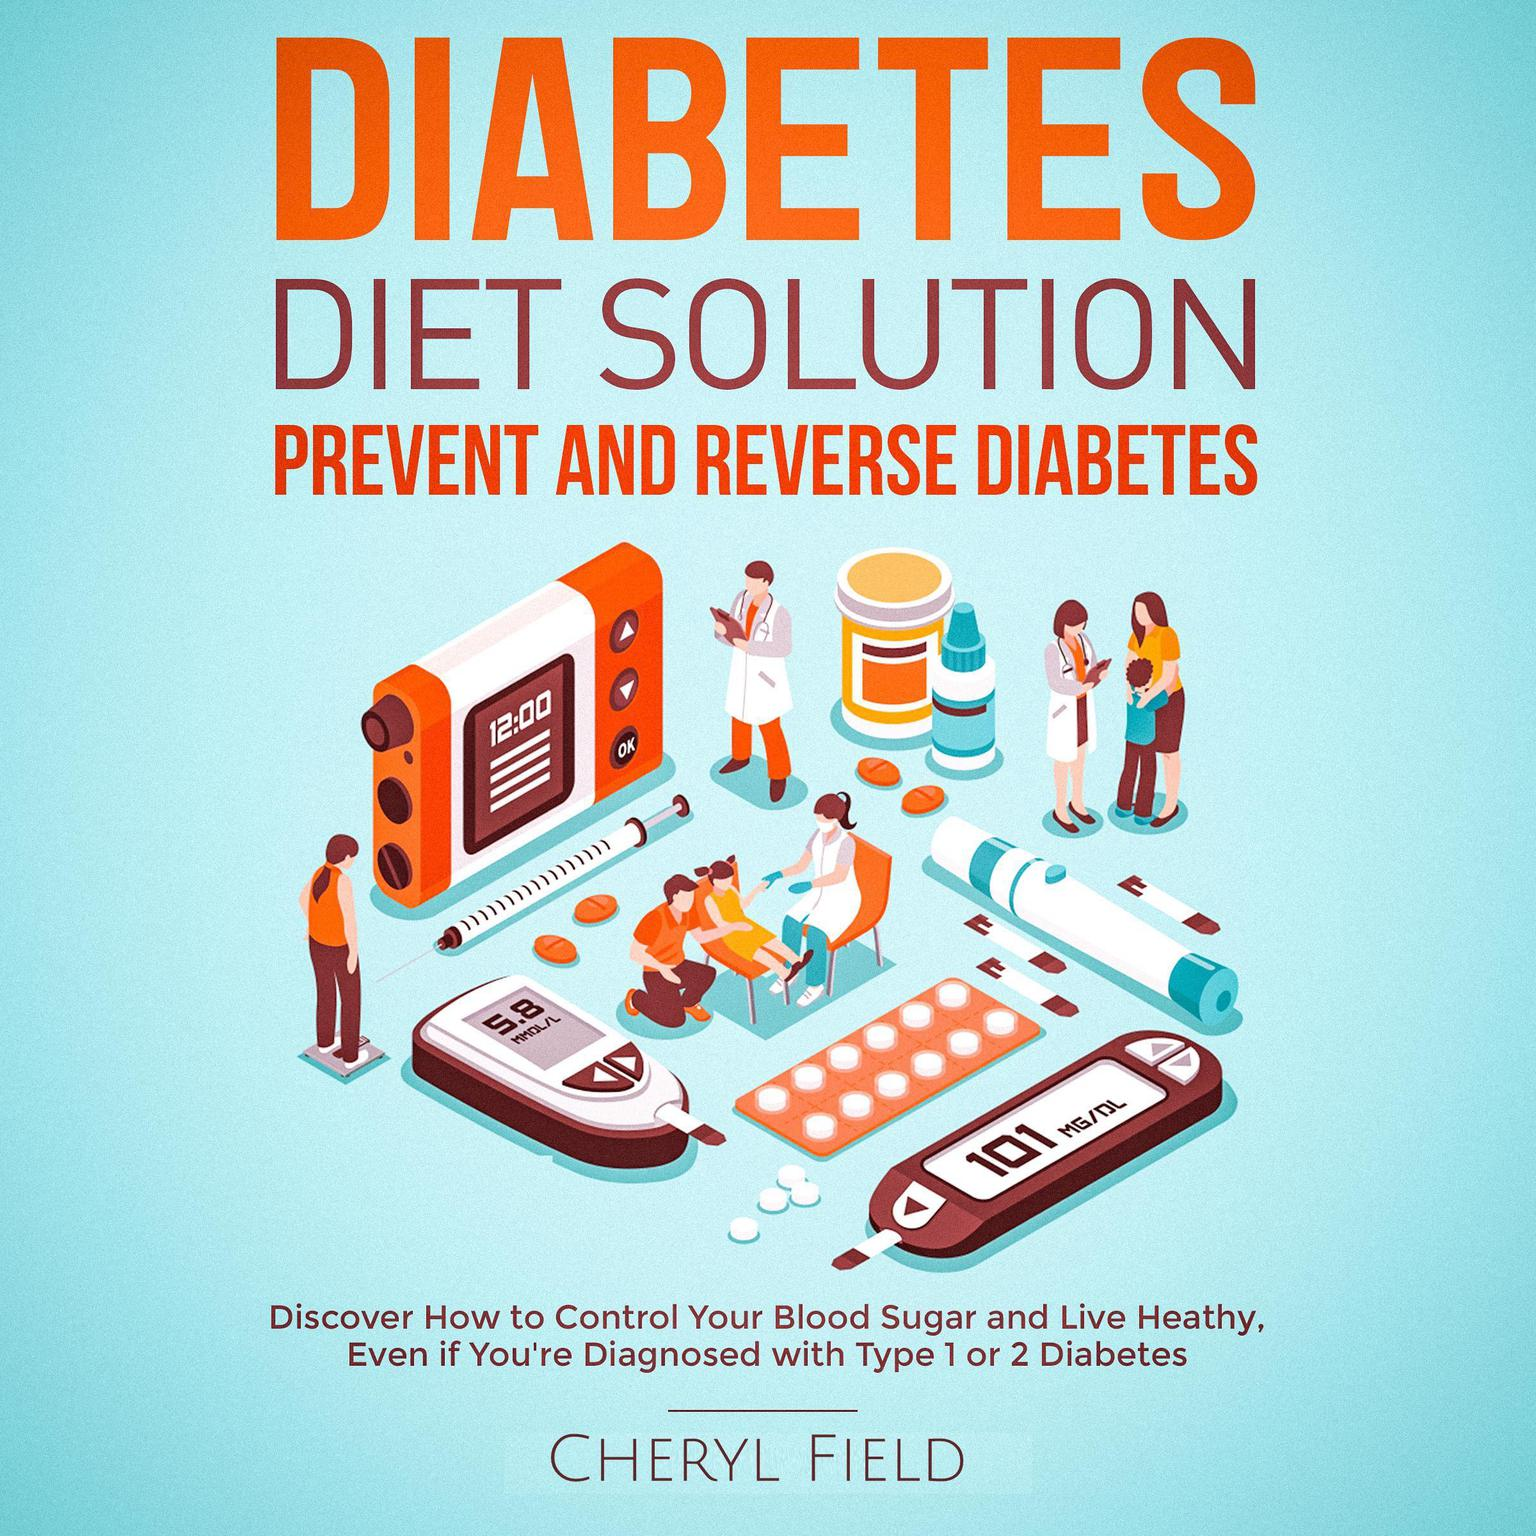 Printable Diabetes Diet Solution - prevent and reverse diabetes: Discover How to Control Your Blood Sugar and Live Healthy even if you are diagnosed with Type 1 or 2 Diabetes  Audiobook Cover Art